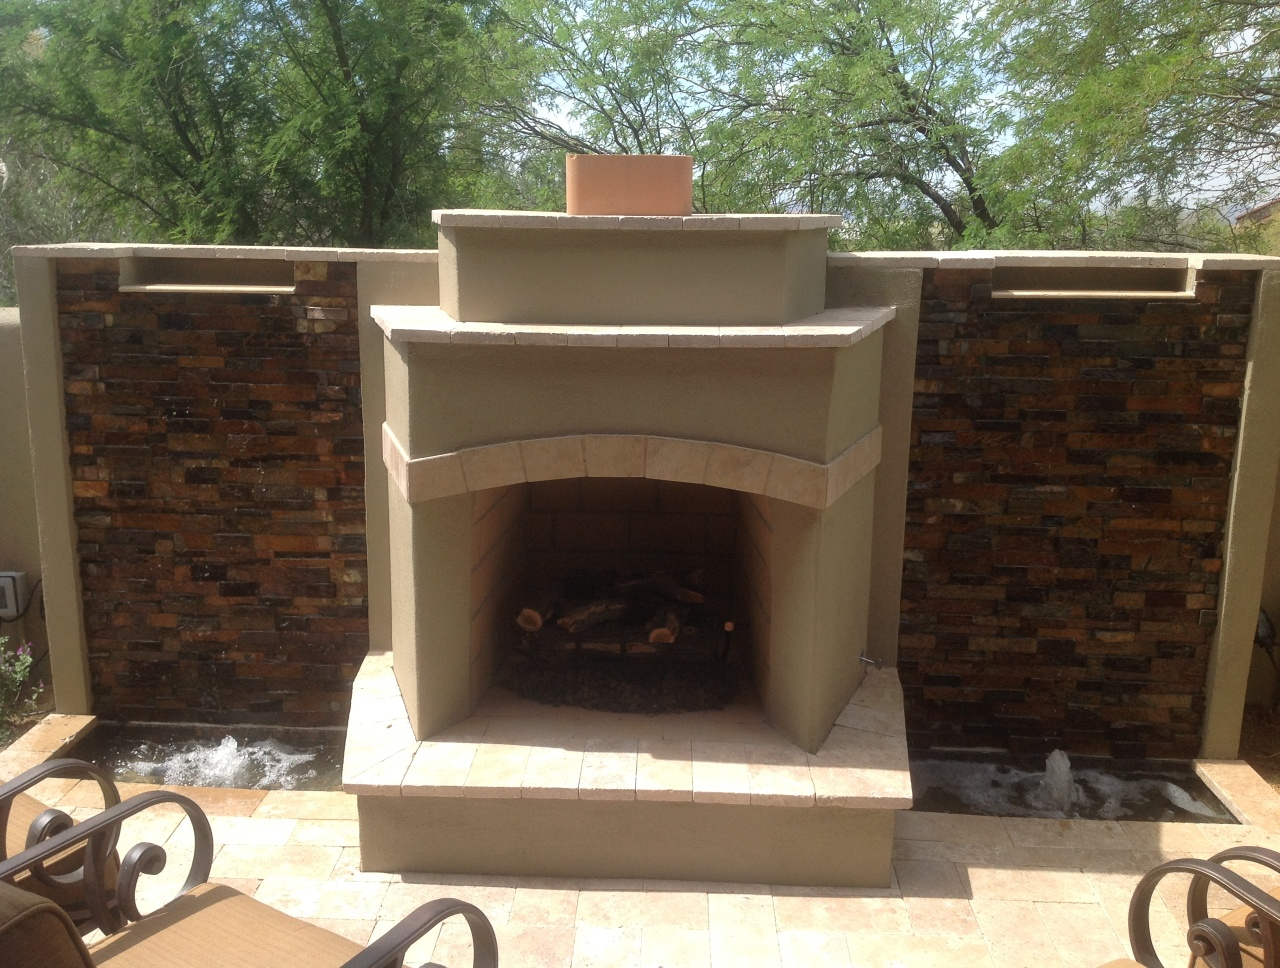 Water cascades over rich, dark stone on foth sides of this Scottsdale outdoor fireplace. The combo unit packs more assets into this small condo outdoor living space.